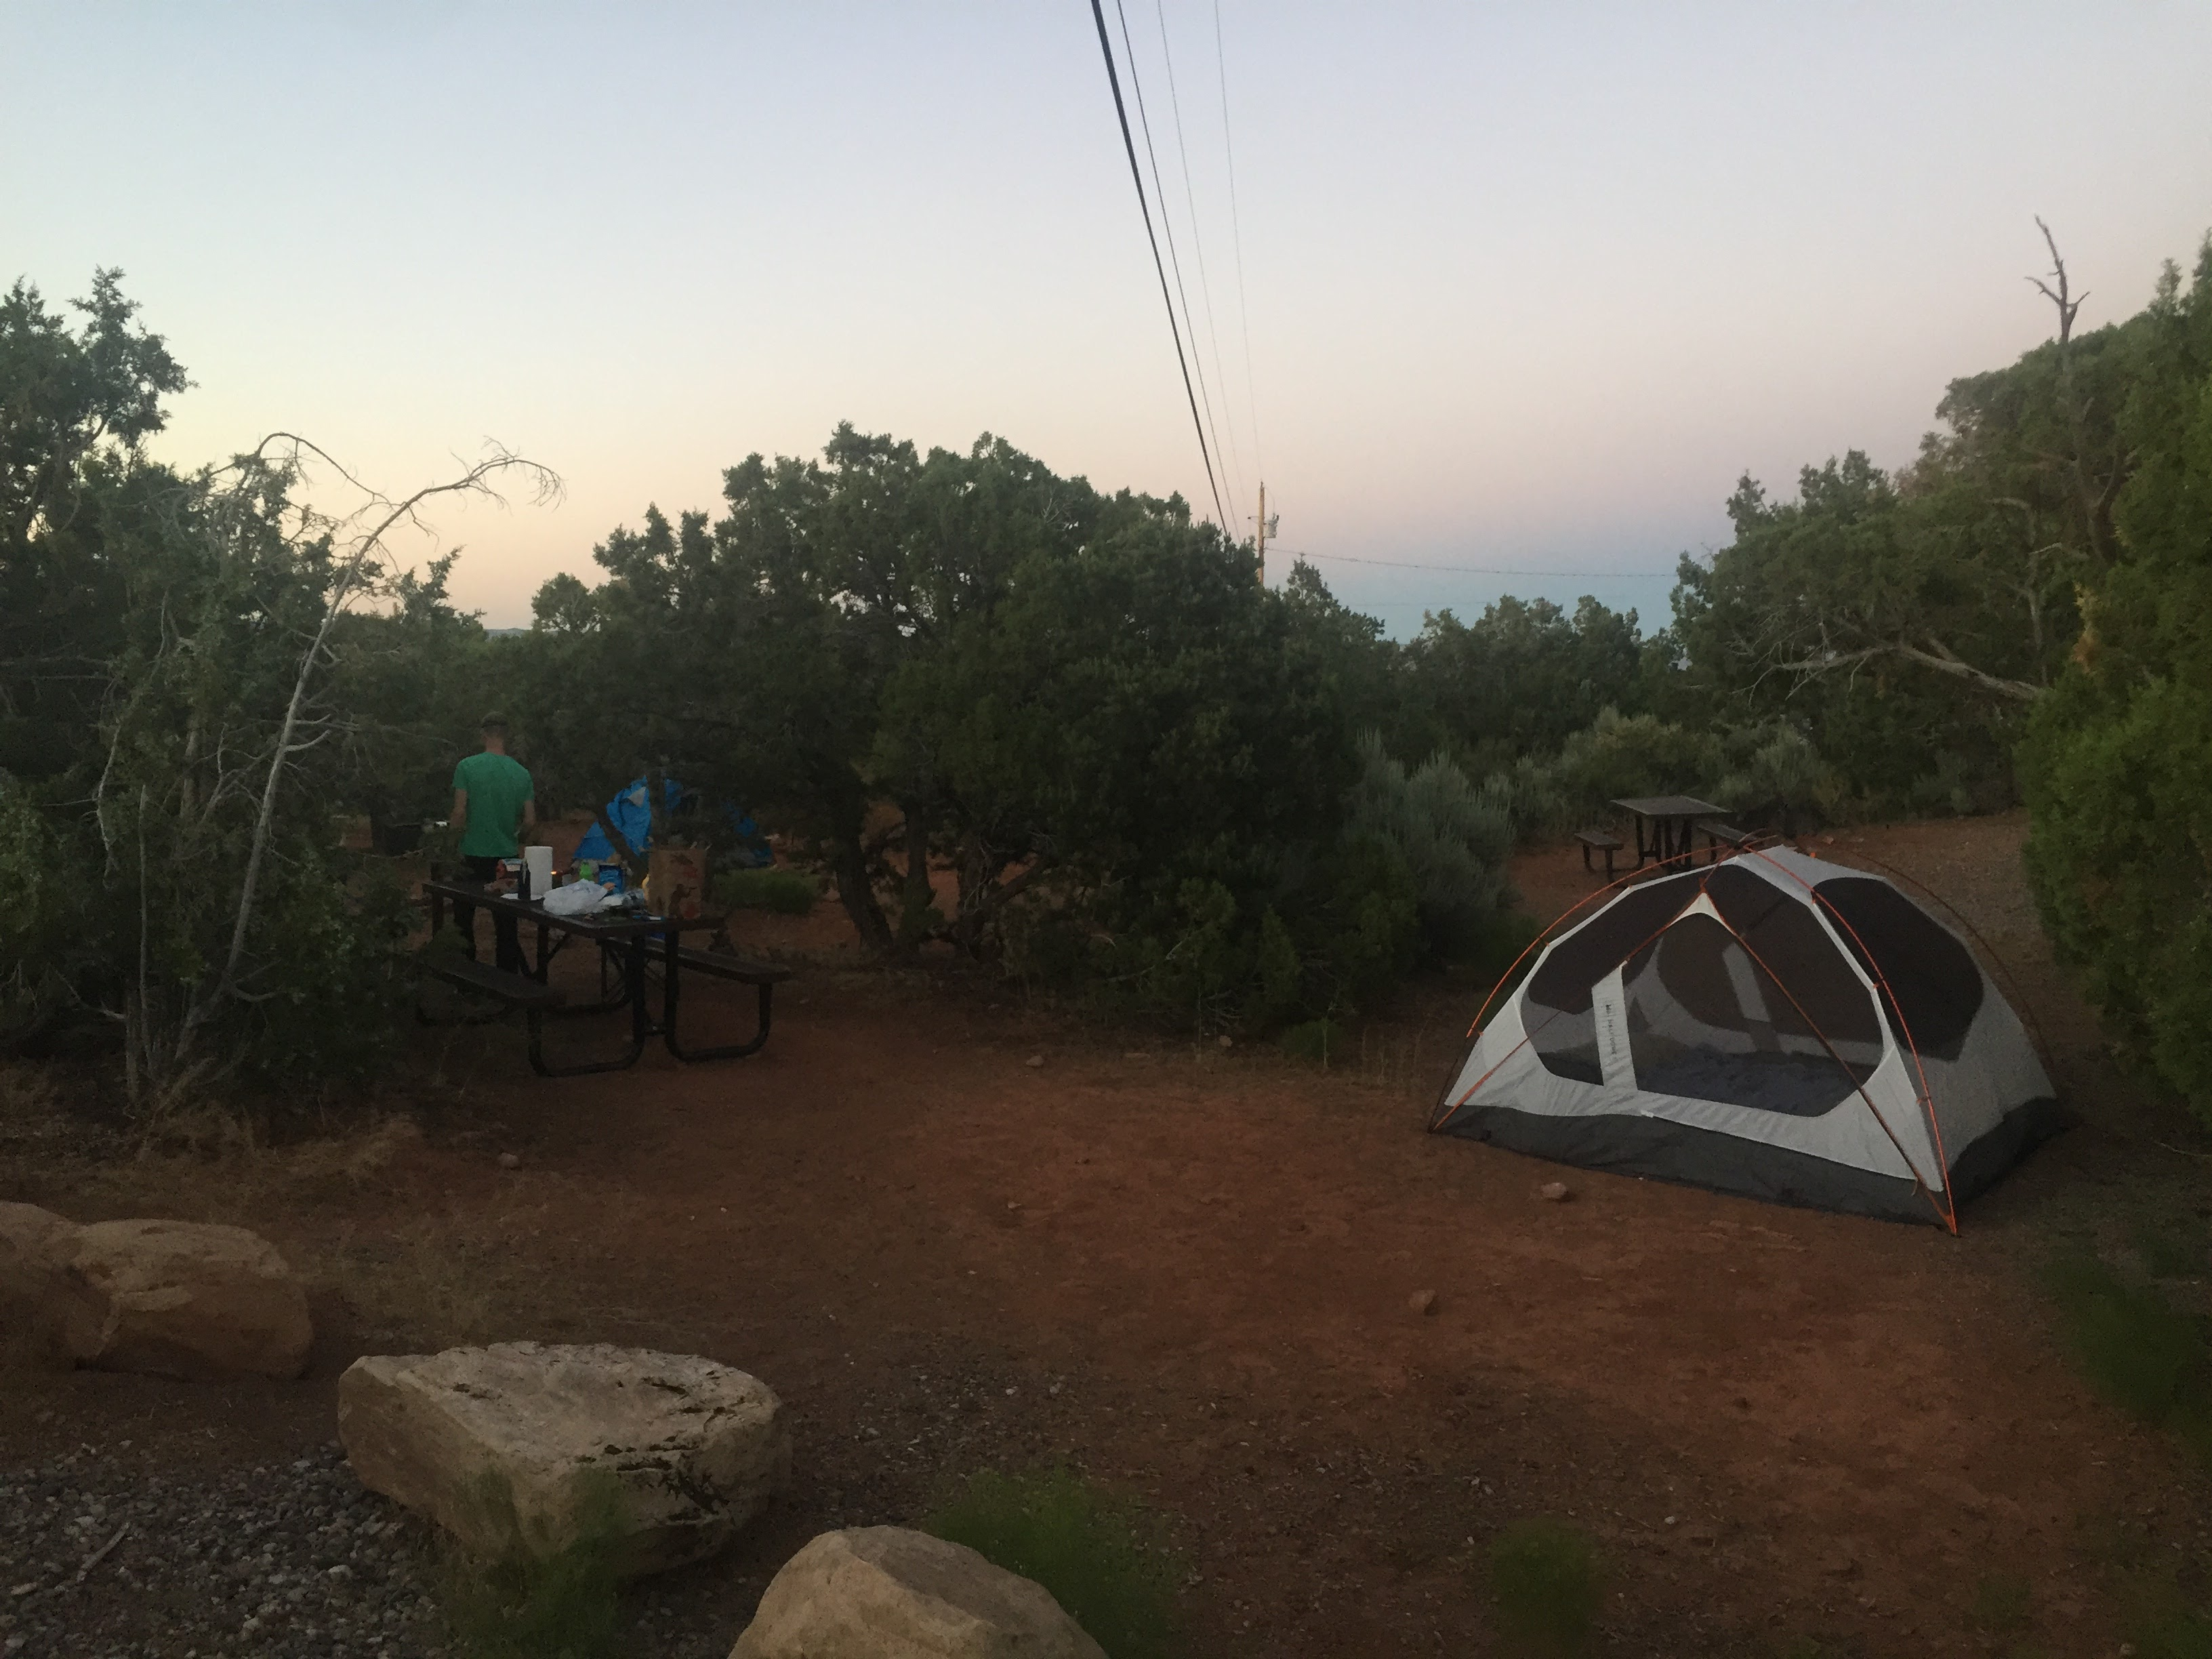 Camping at Colorado National Monument Saddlehorn Campground 3